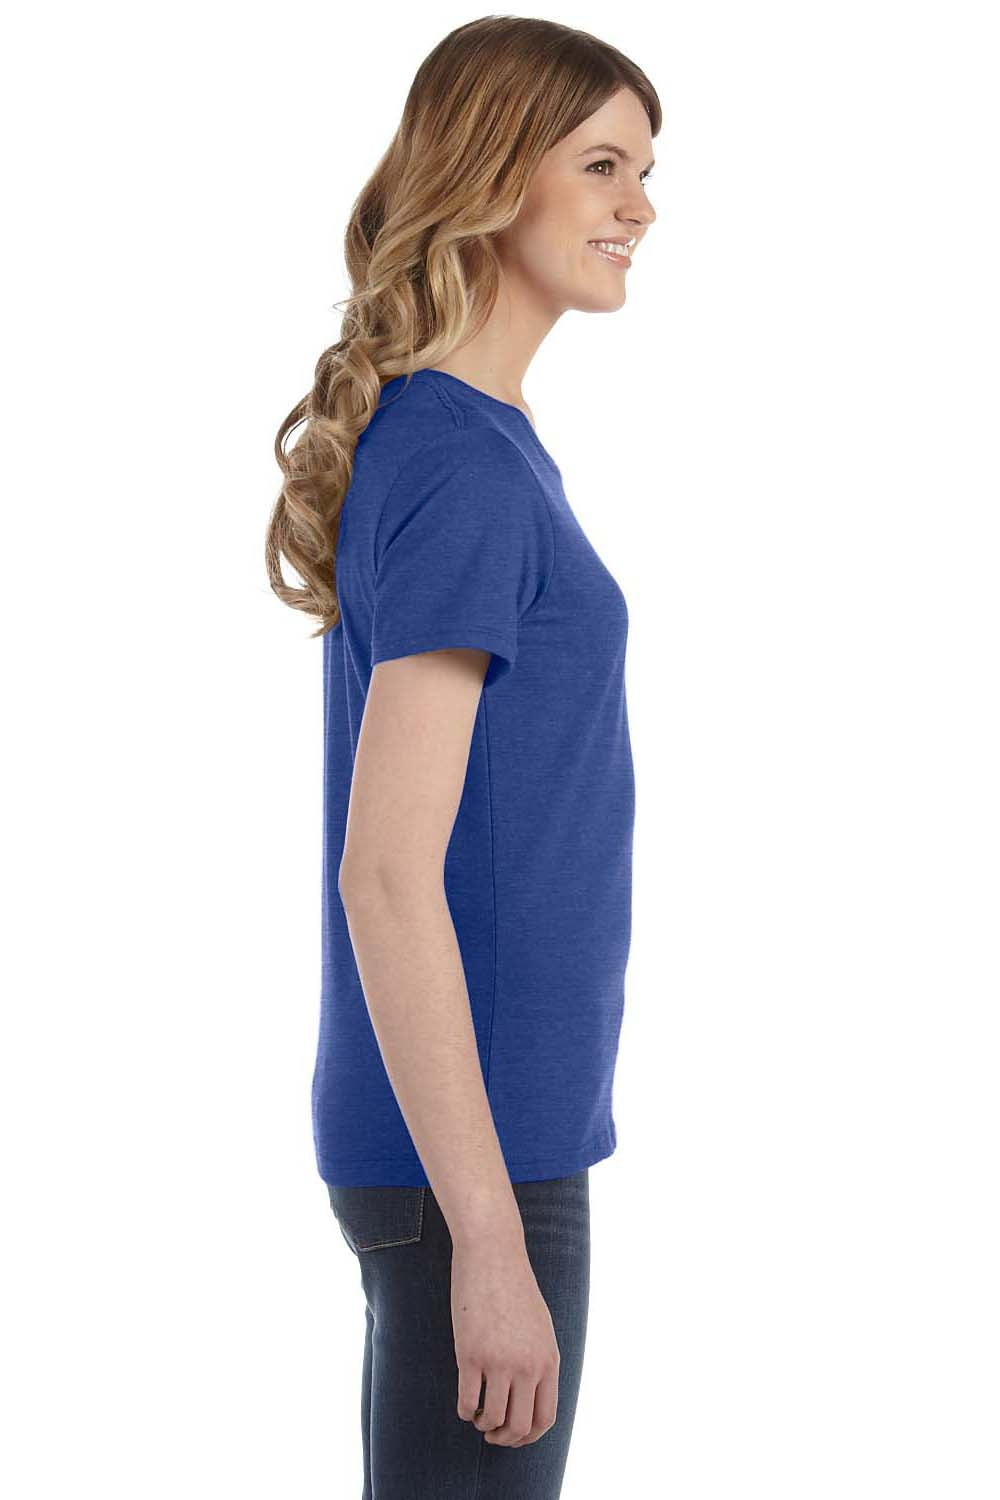 Anvil 880 Womens Short Sleeve Crewneck T-Shirt Heather Blue Side